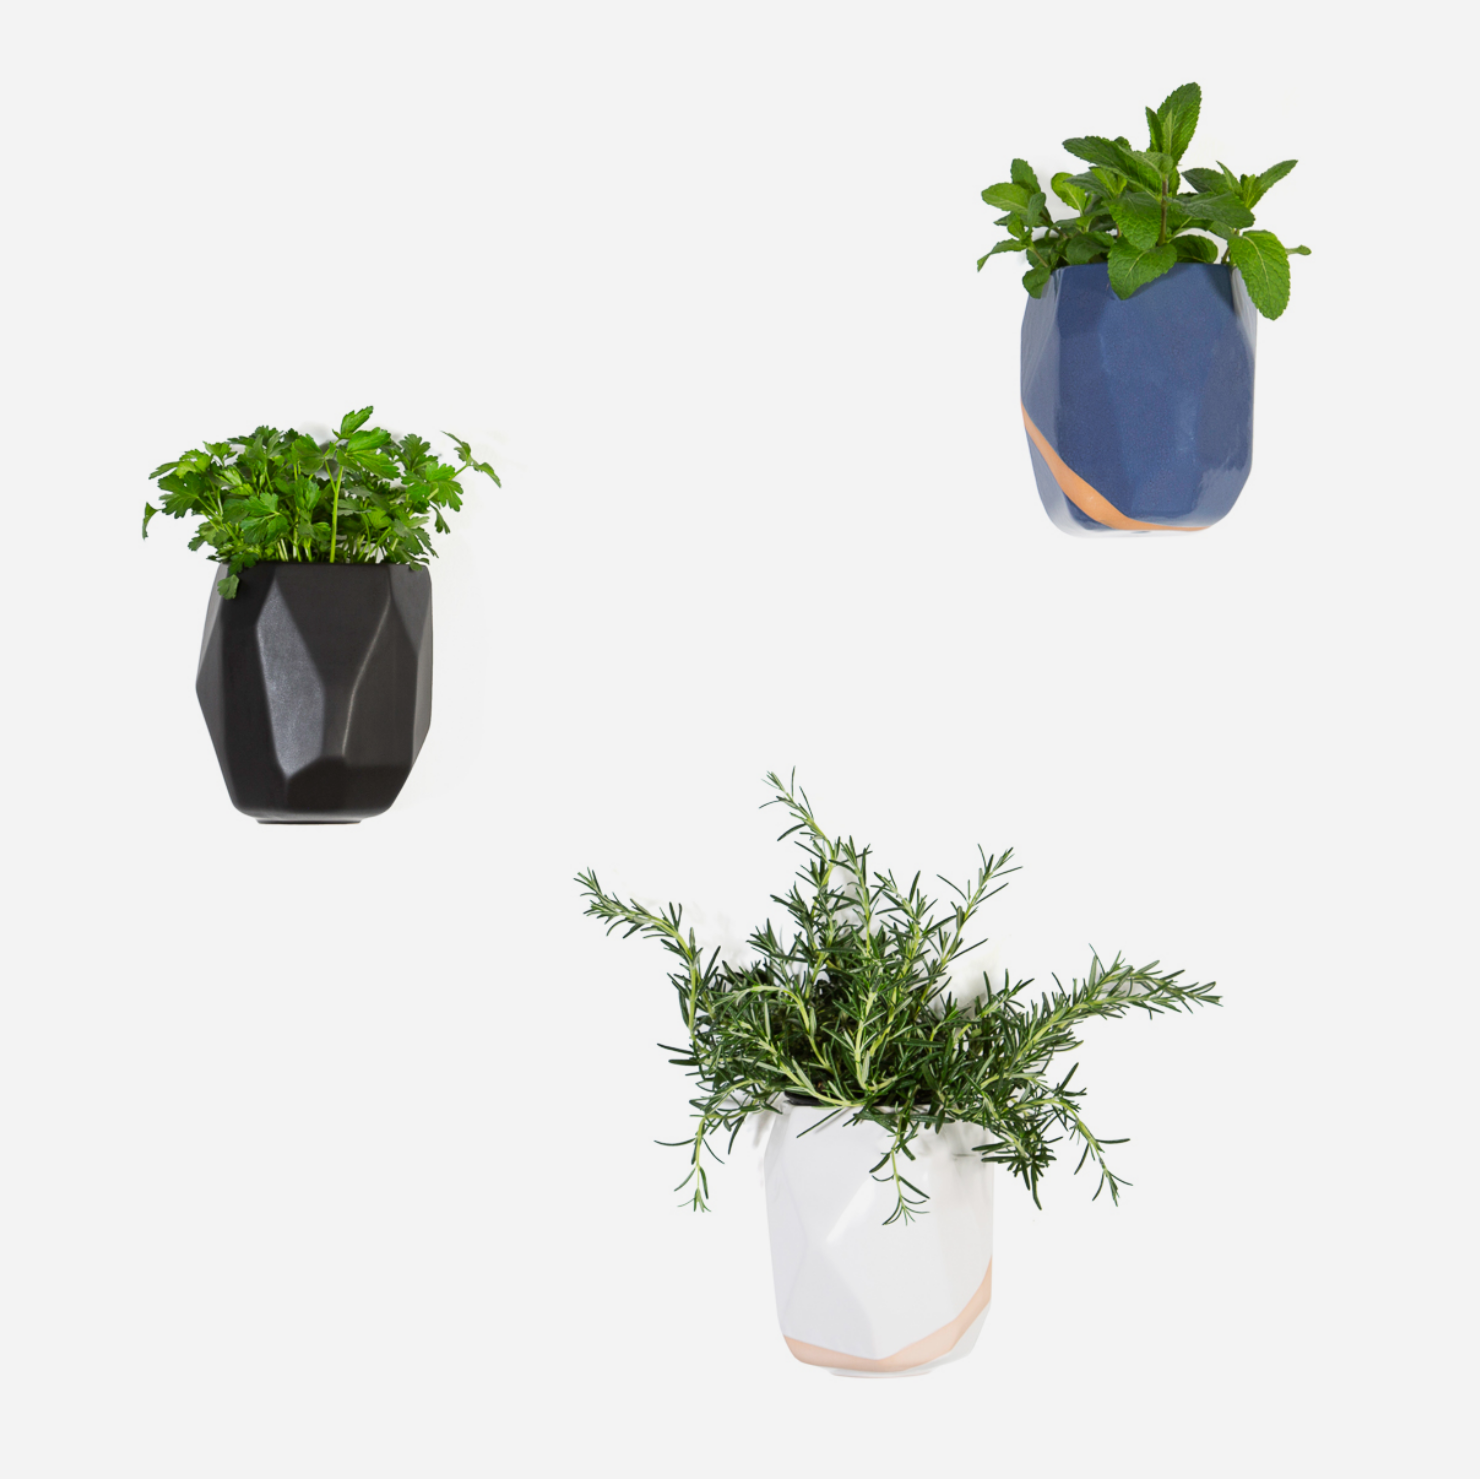 Moonrock Planter - White Terra